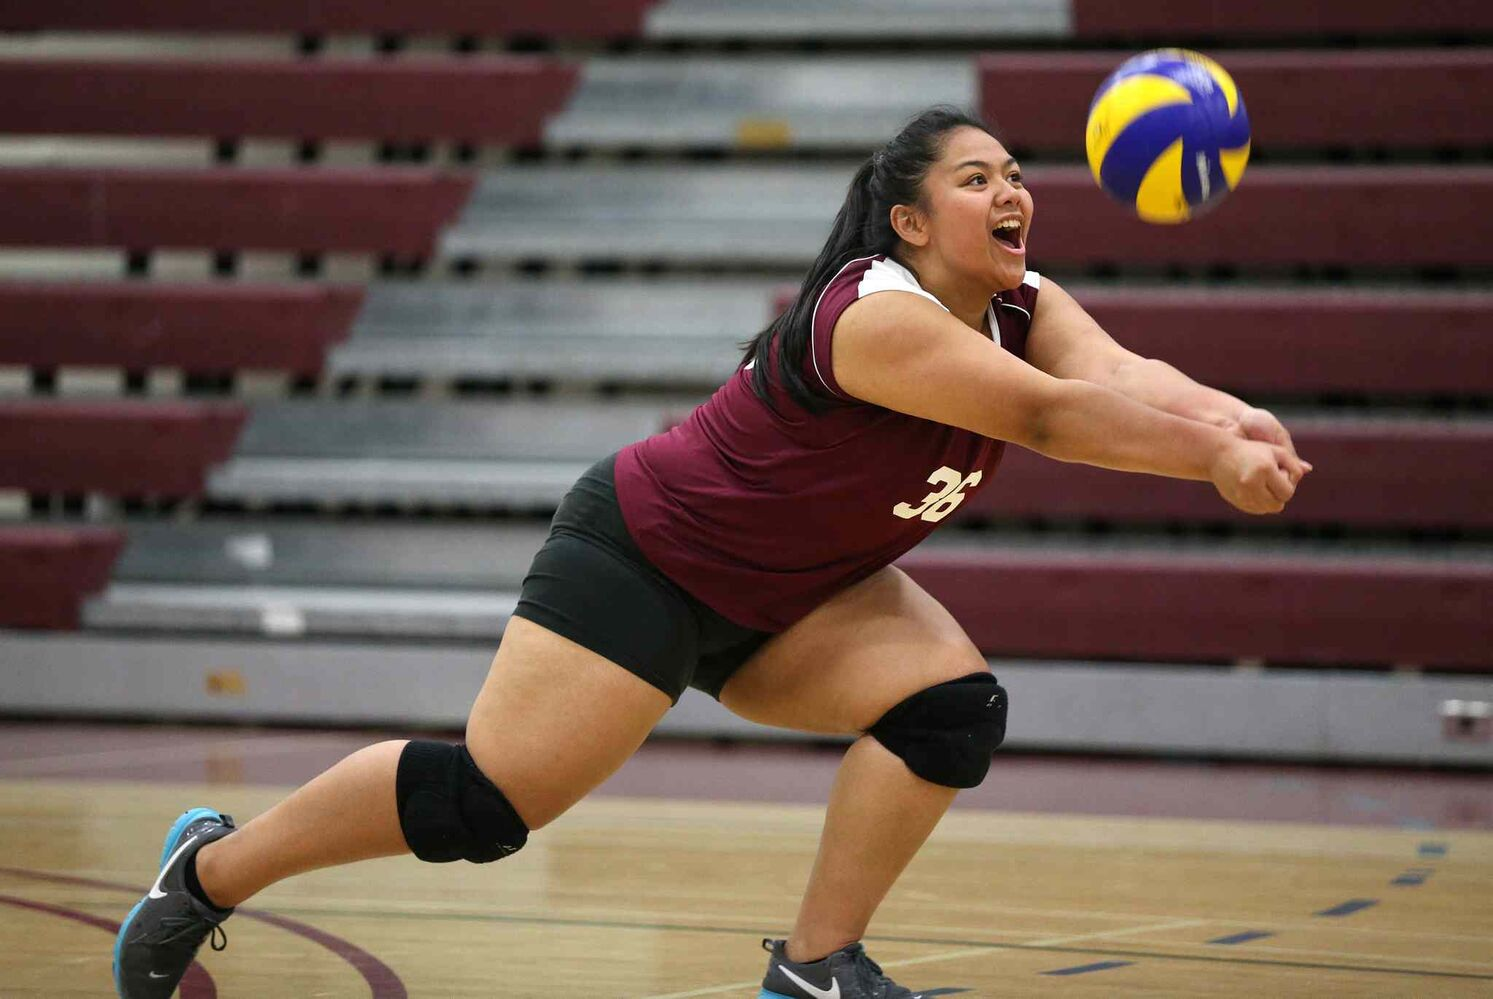 DMCI Maroons'  Abigail Ramos bumps the ball during the first set against the Grant Park Pirates. (TREVOR HAGAN / WINNIPEG FREE PRESS)